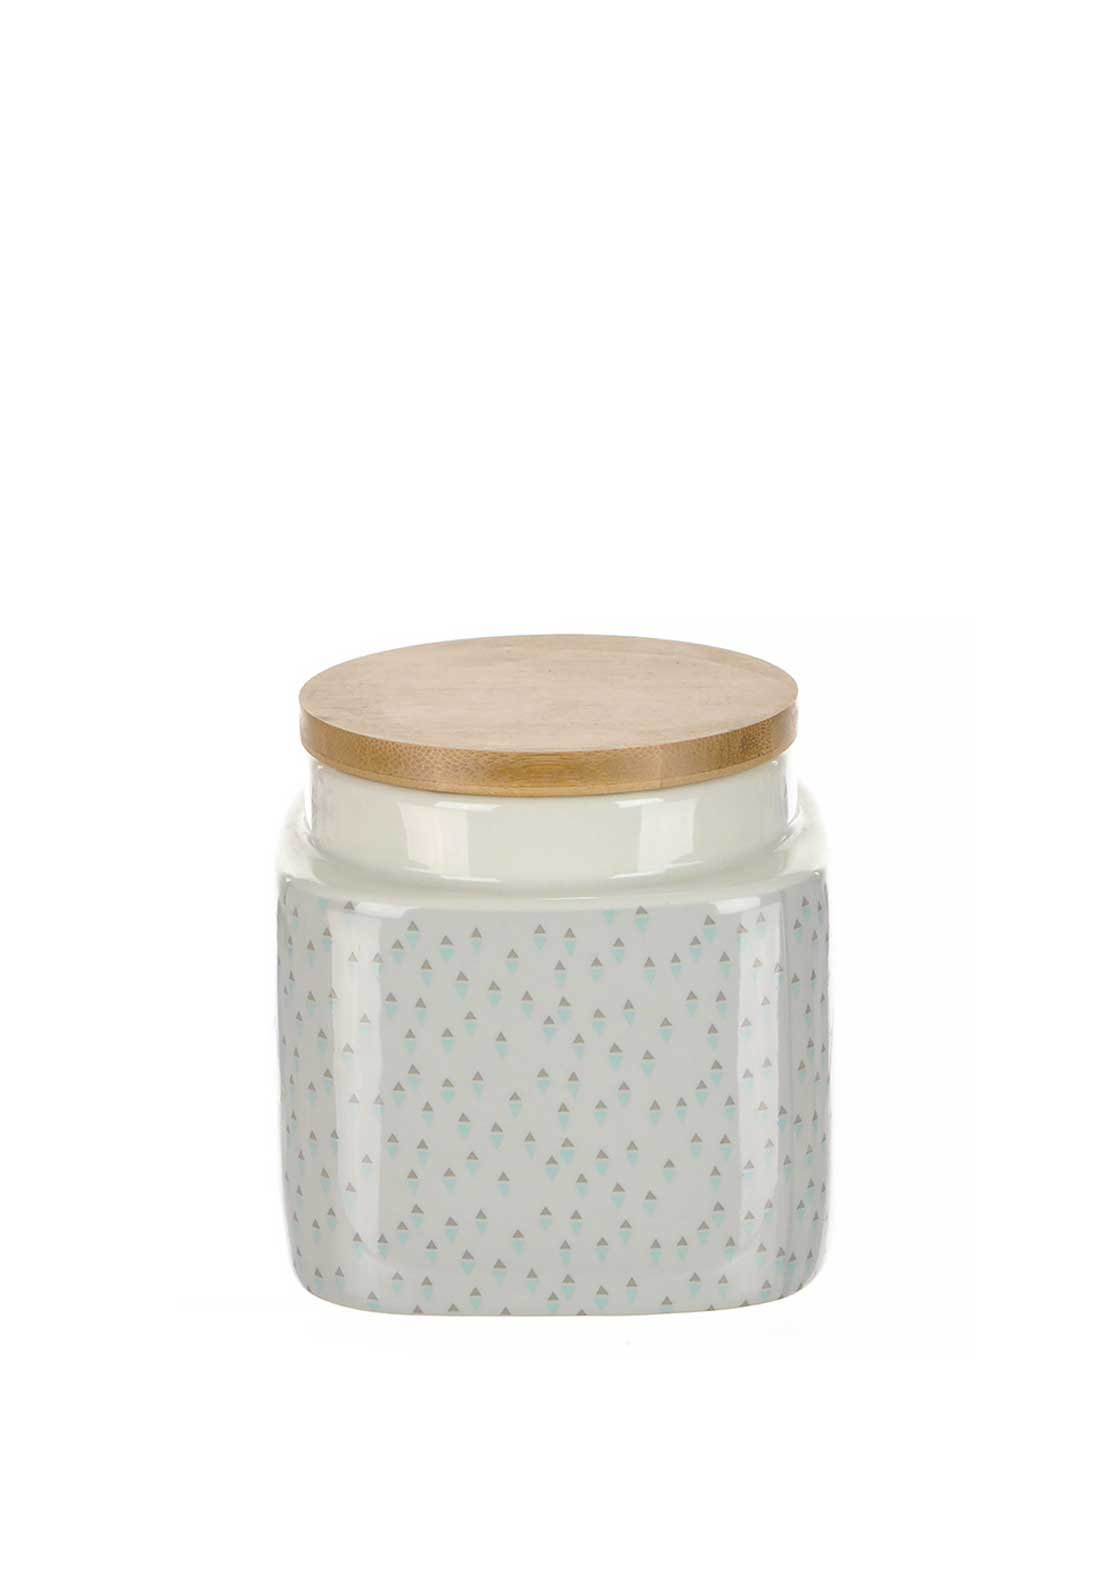 Katie Alice Pretty Retro Small Stoneware Storage Jar, Cream Multi